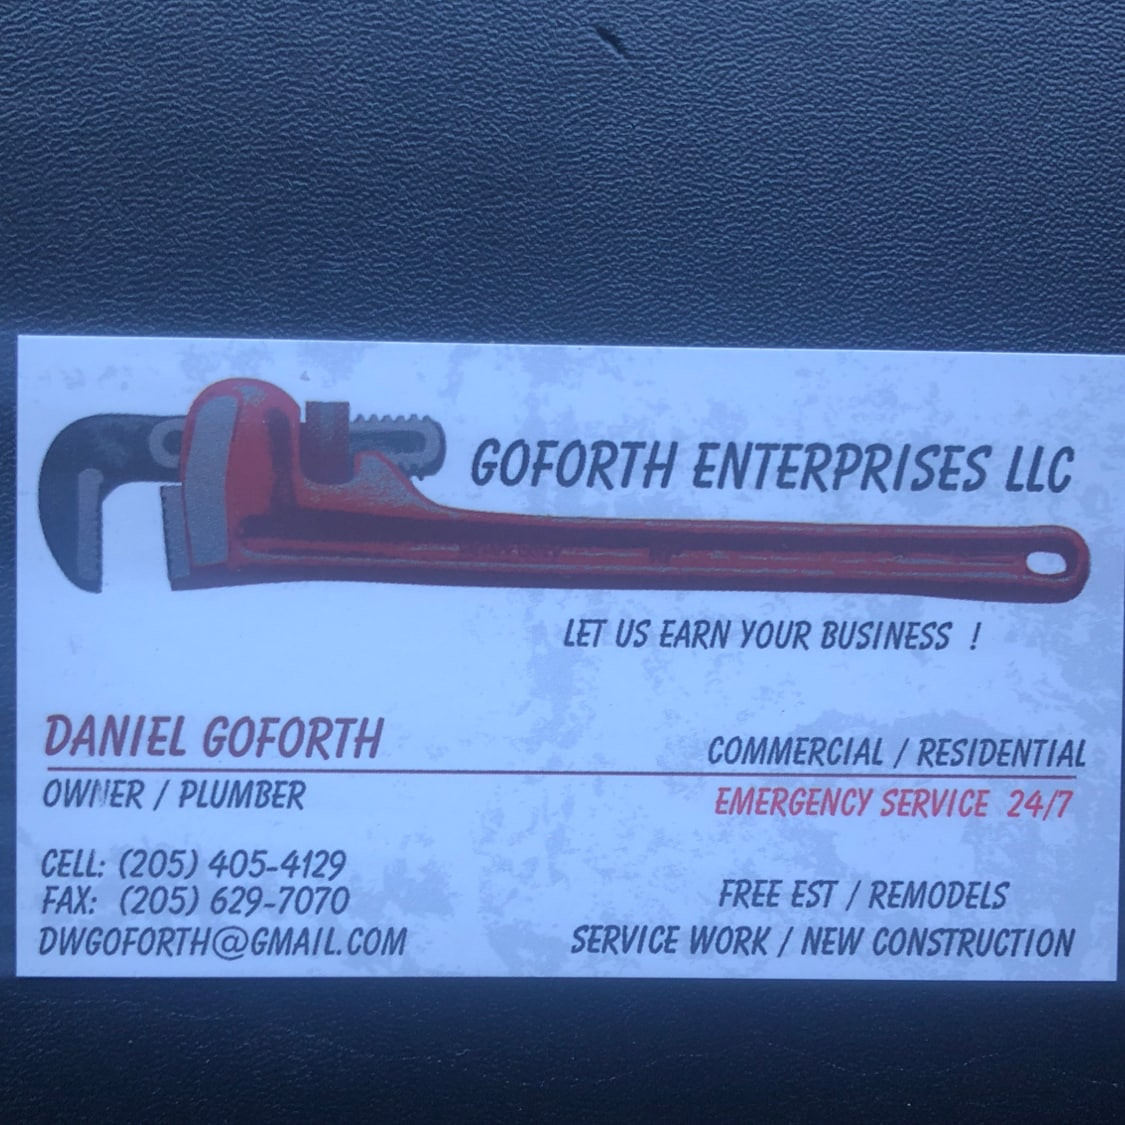 Goforth Enterprises